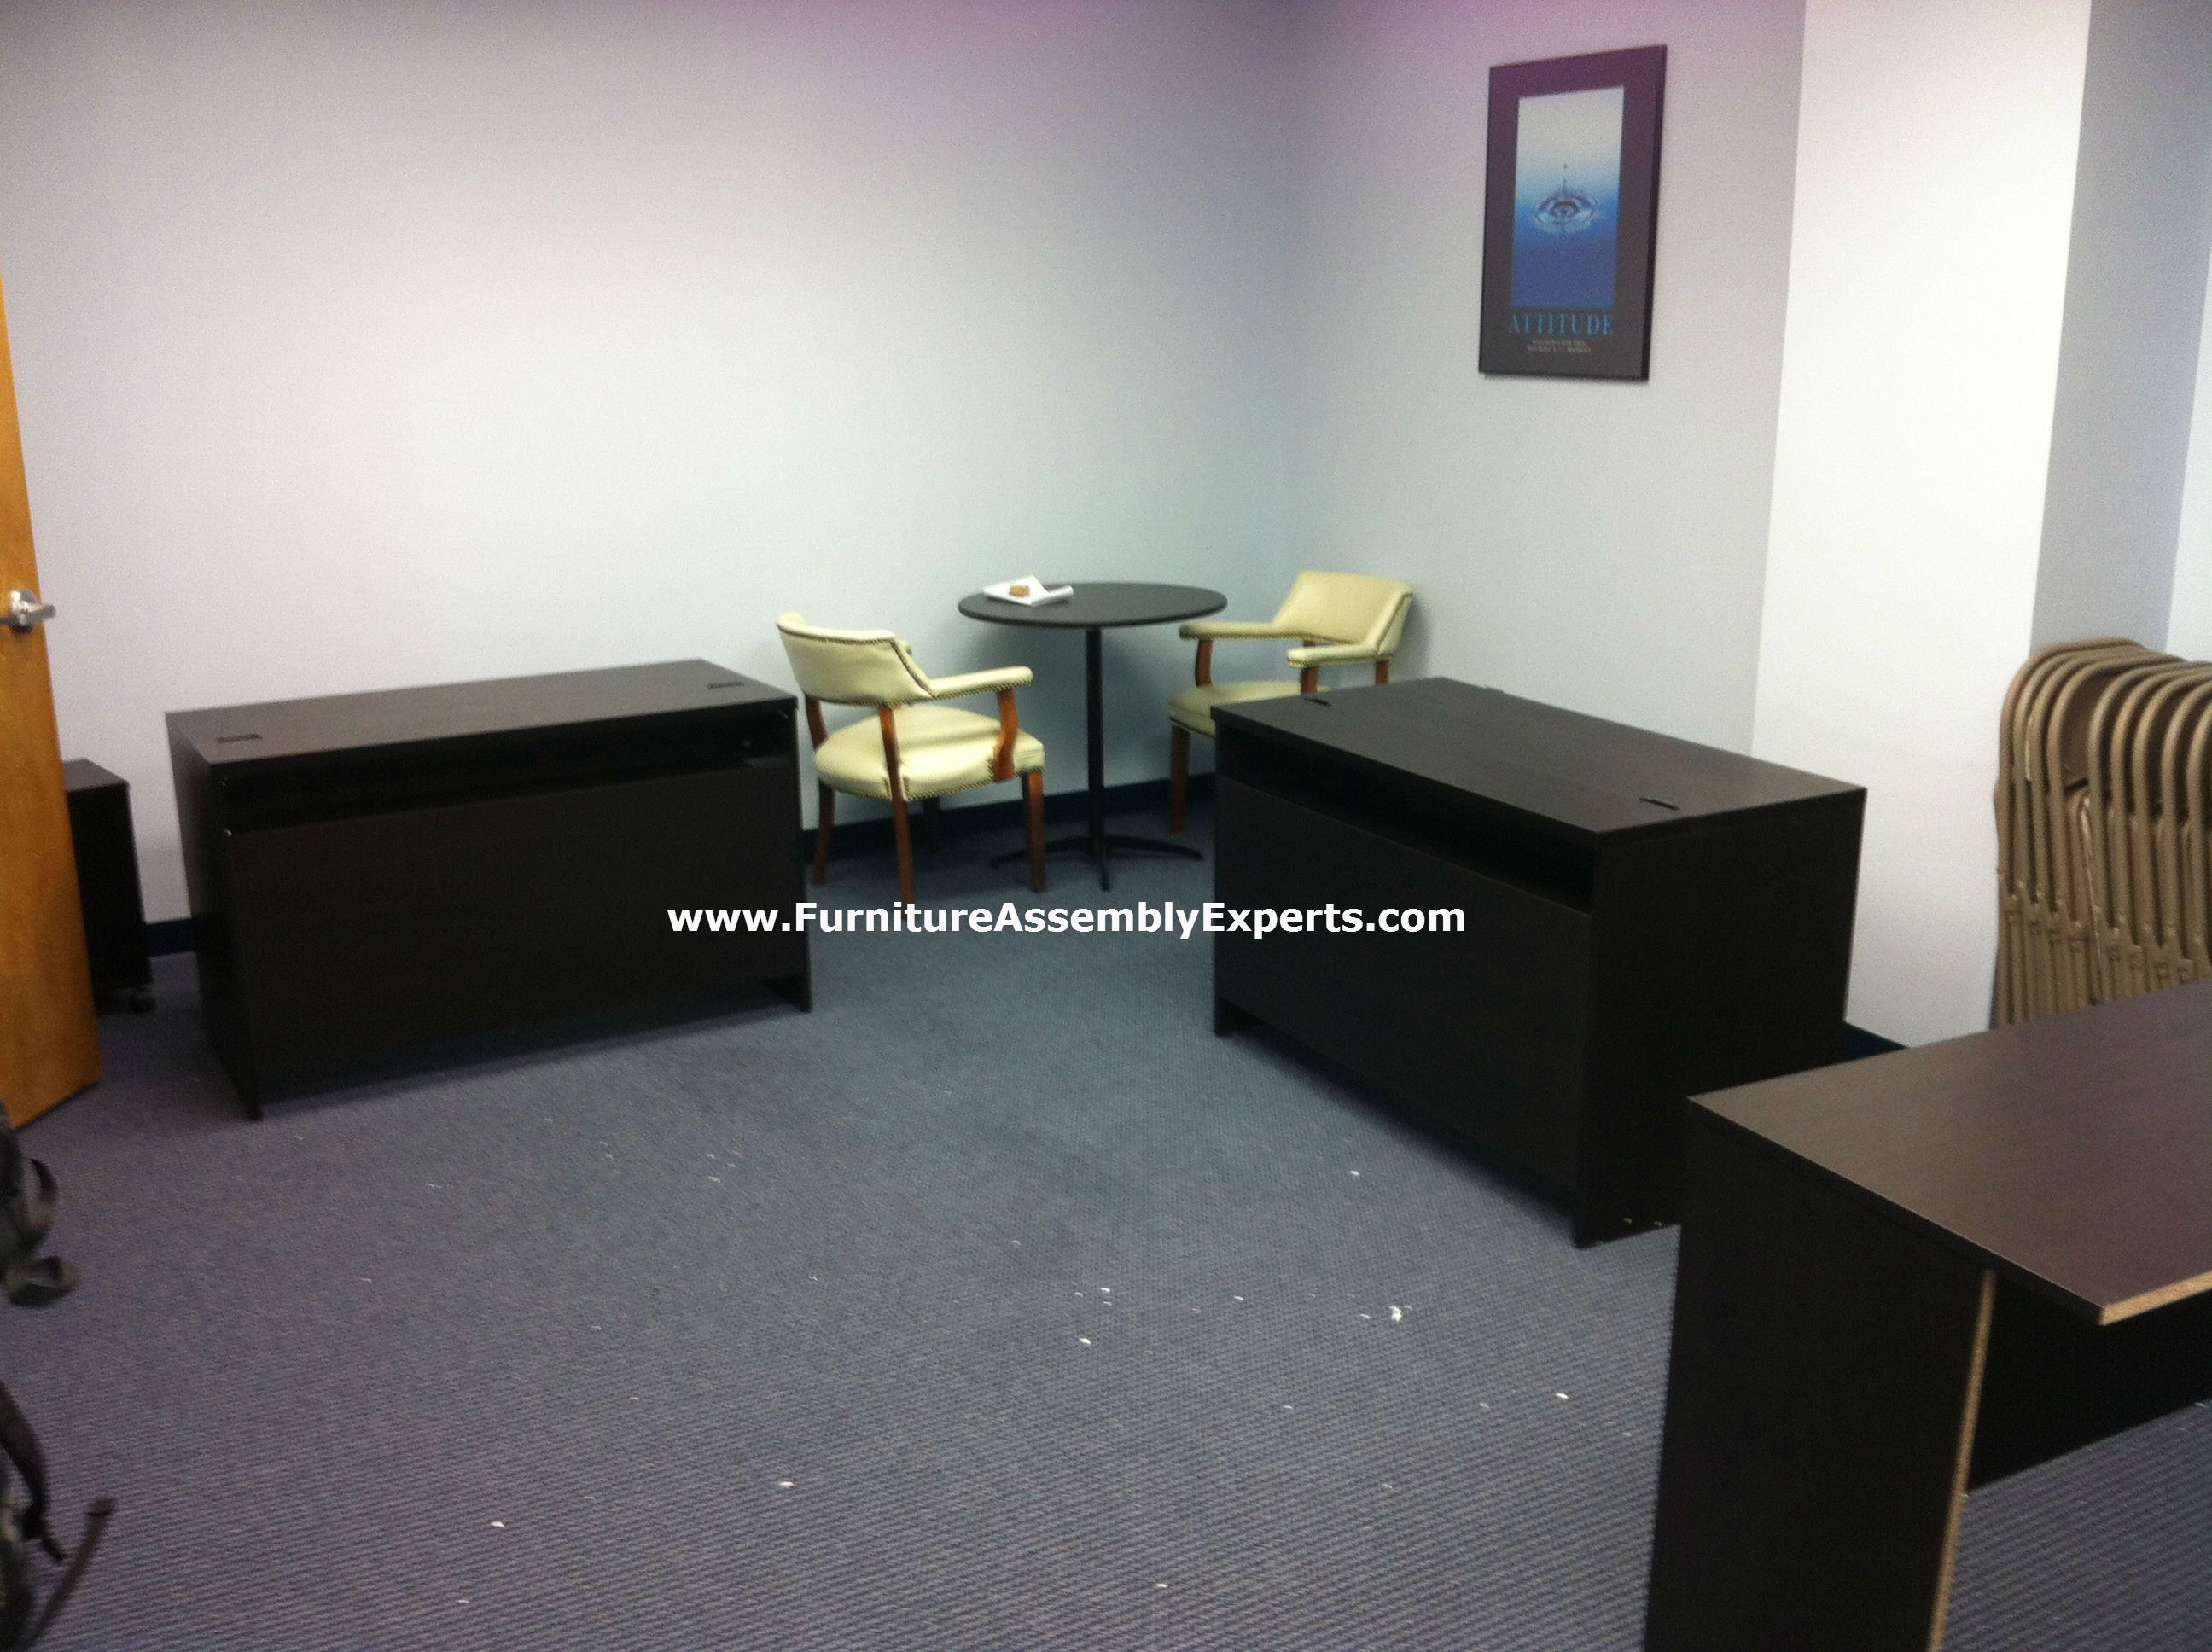 Ikea Office Furniture Installed In Prince William County Va By Furniture  Assembly Experts LLC   Call